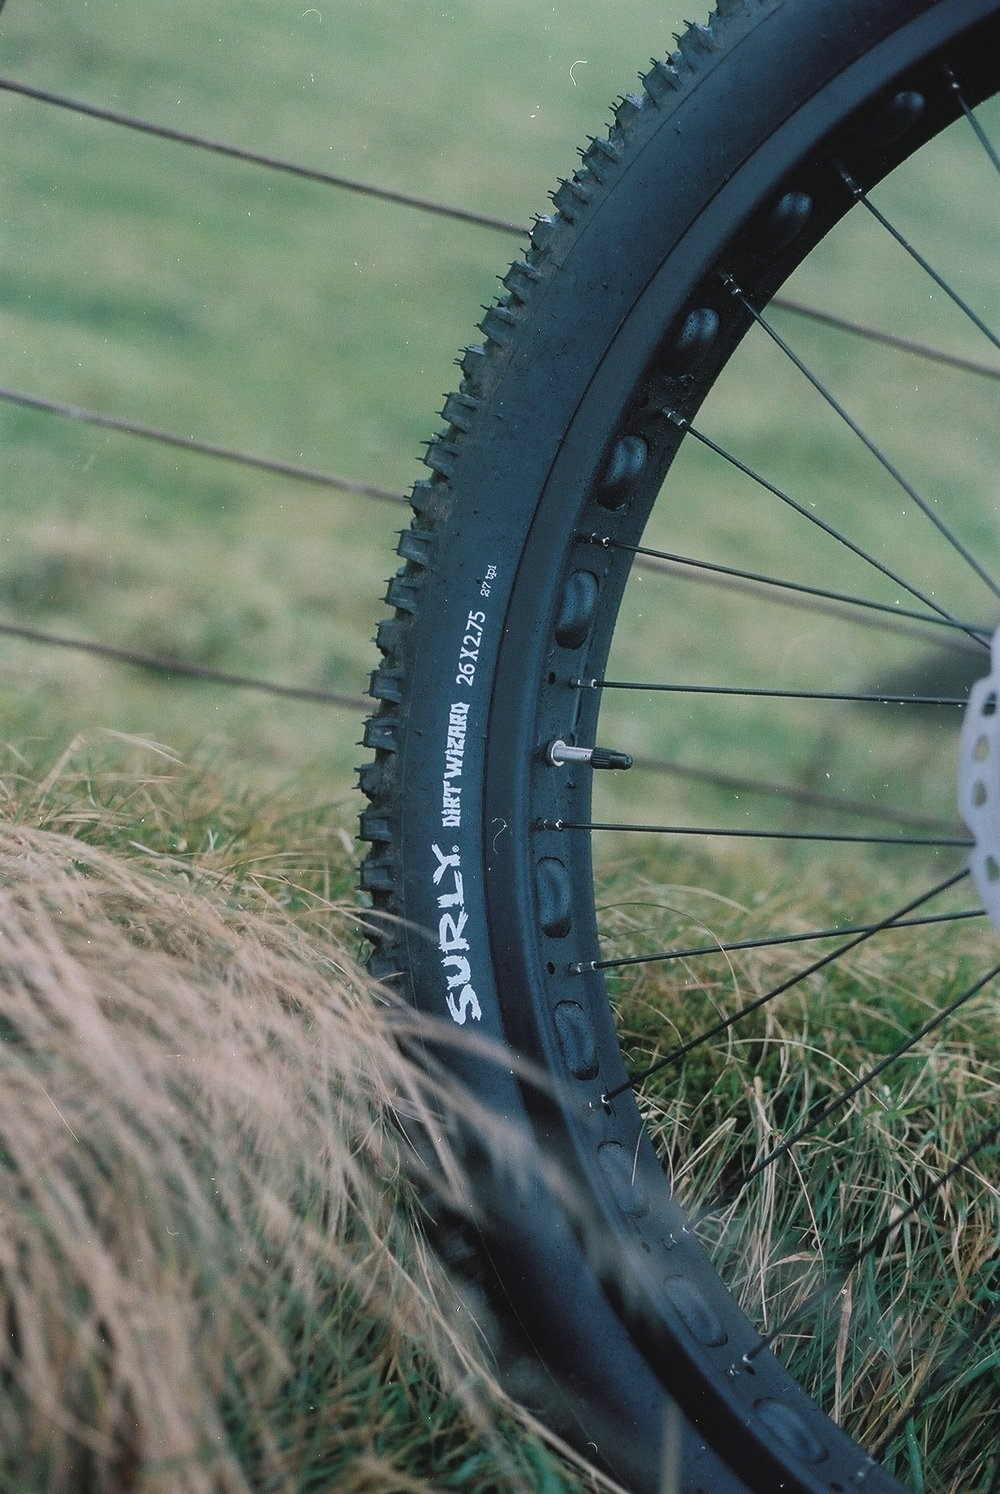 Surly Dirt Wizard tyres....no punctures & grip for days...nuff said.